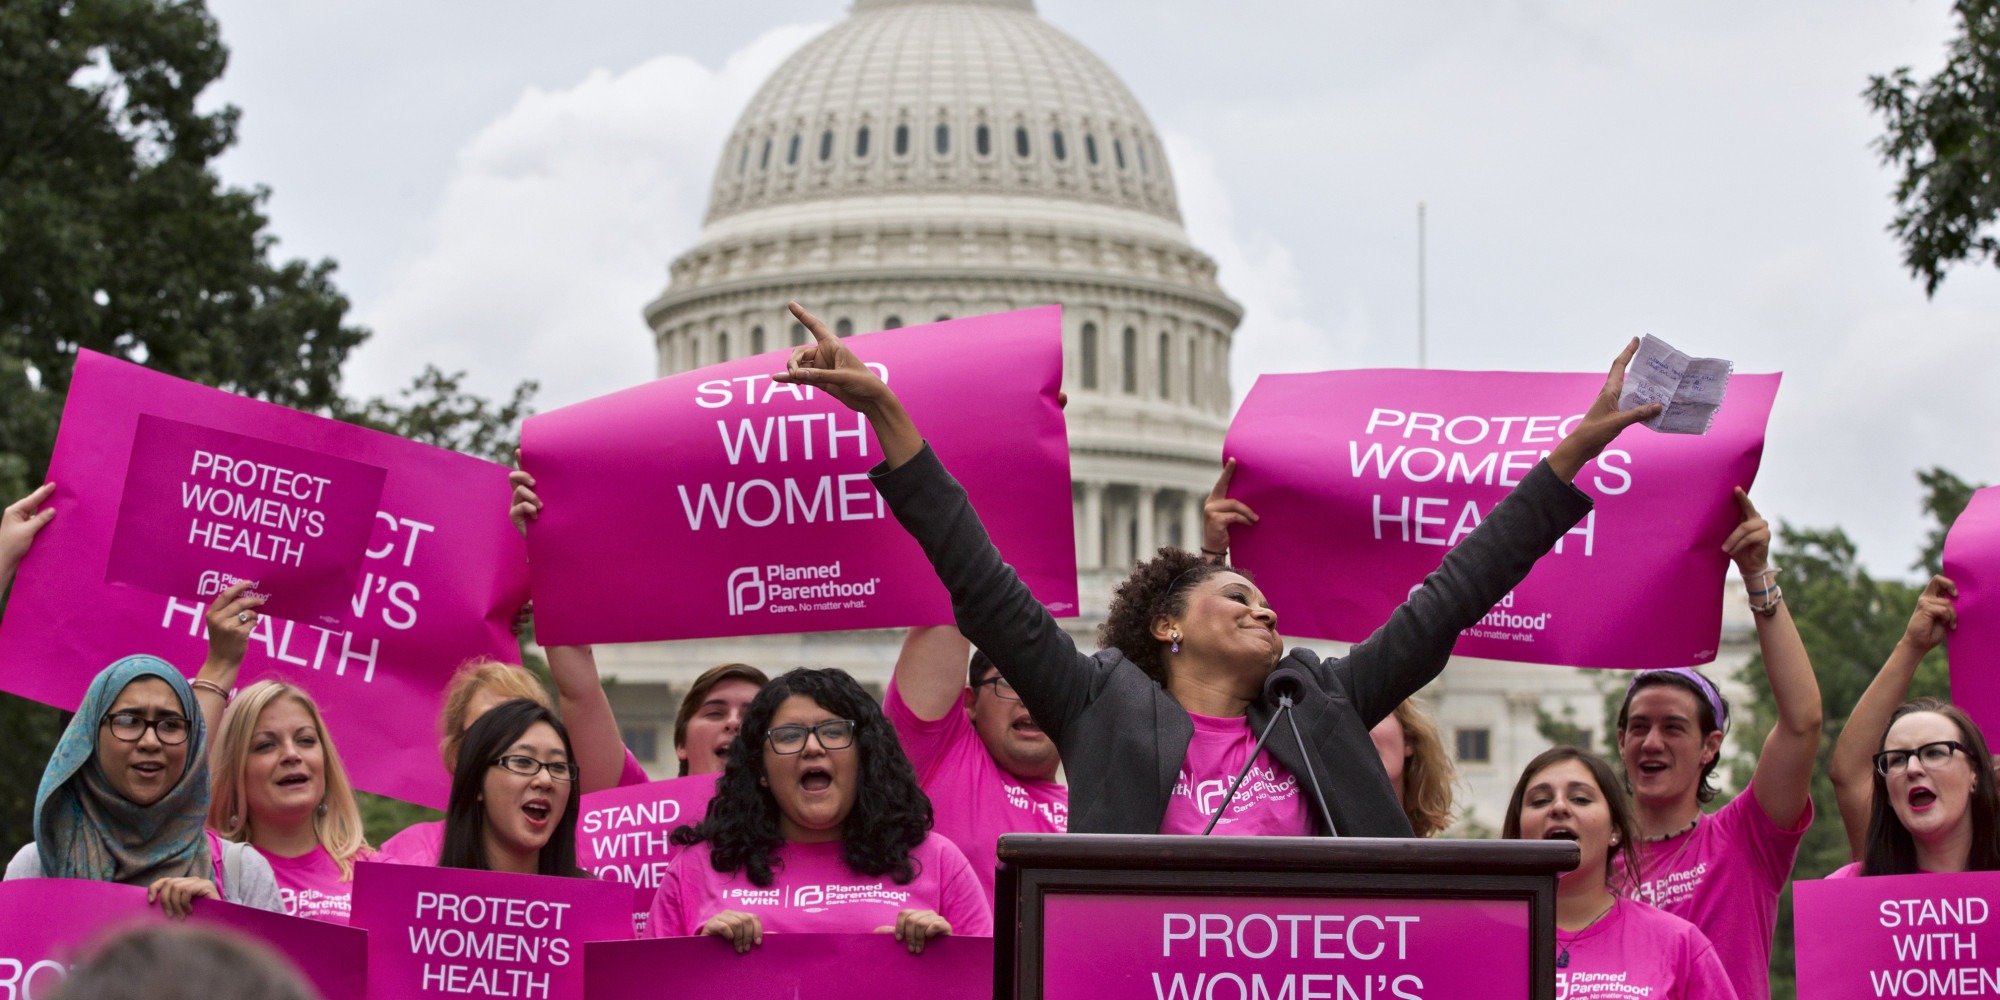 Trump signs legislation allowing states to withhold some Planned Parenthood money